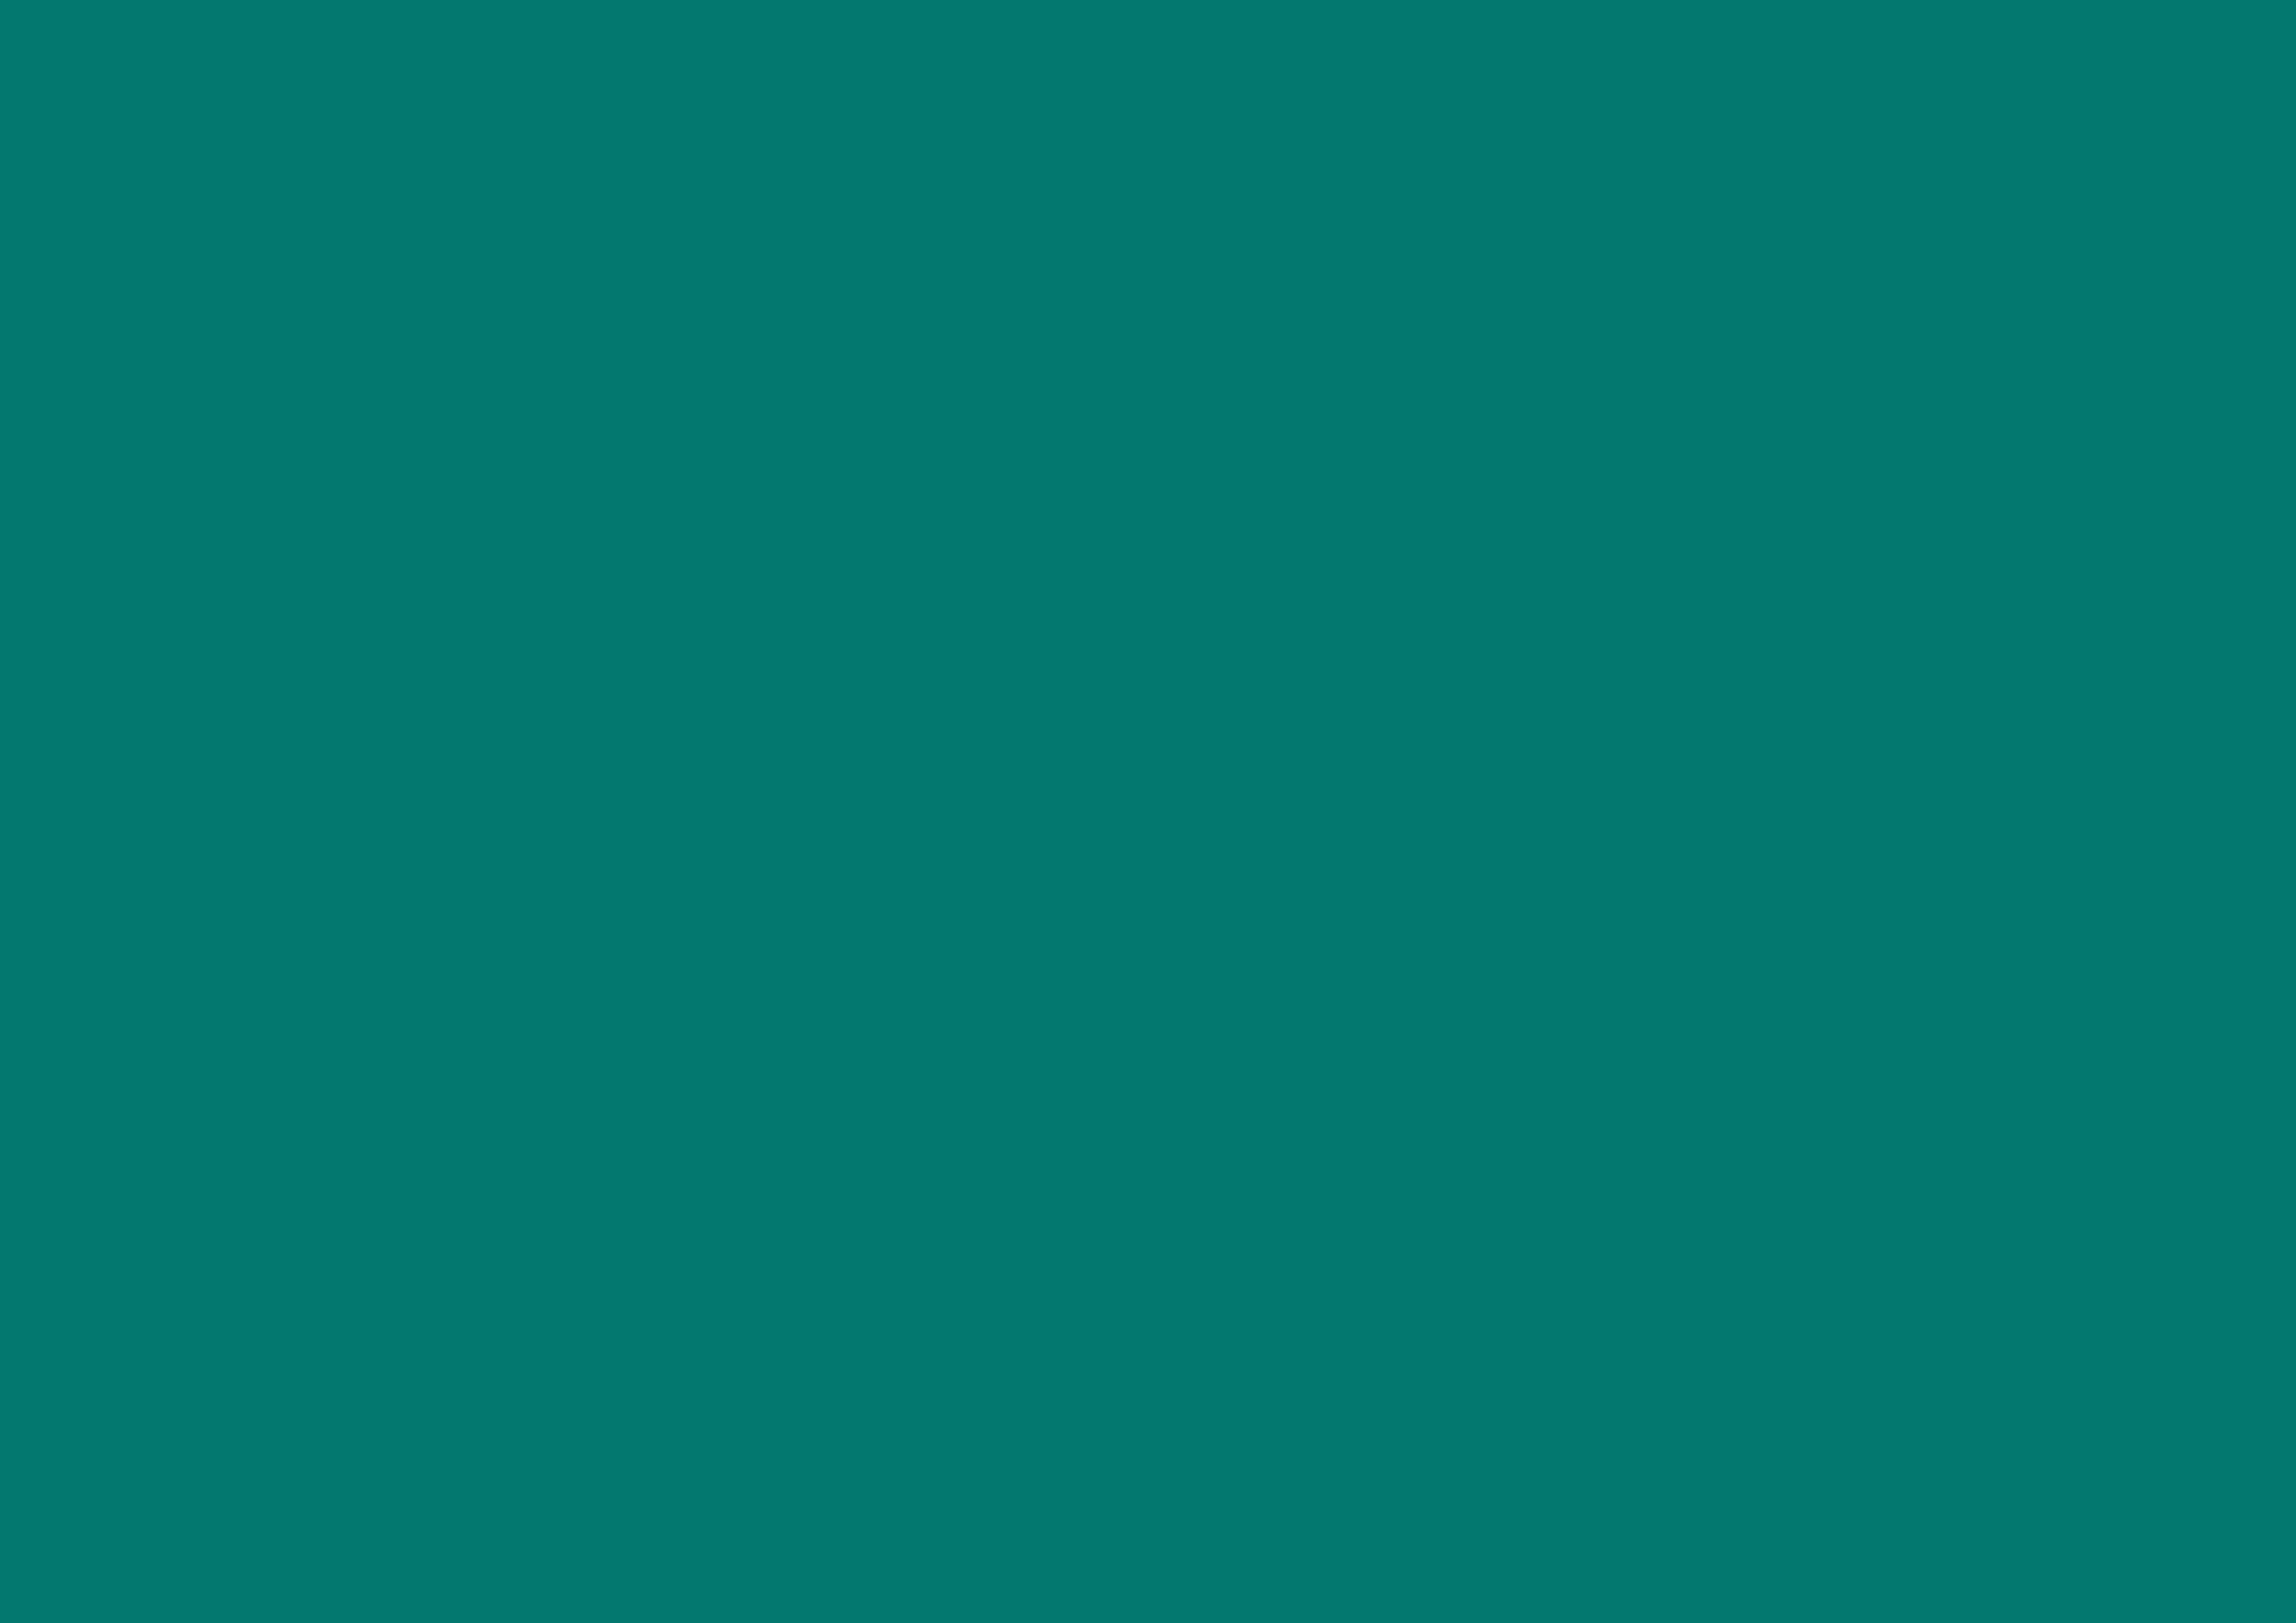 3508x2480 Pine Green Solid Color Background